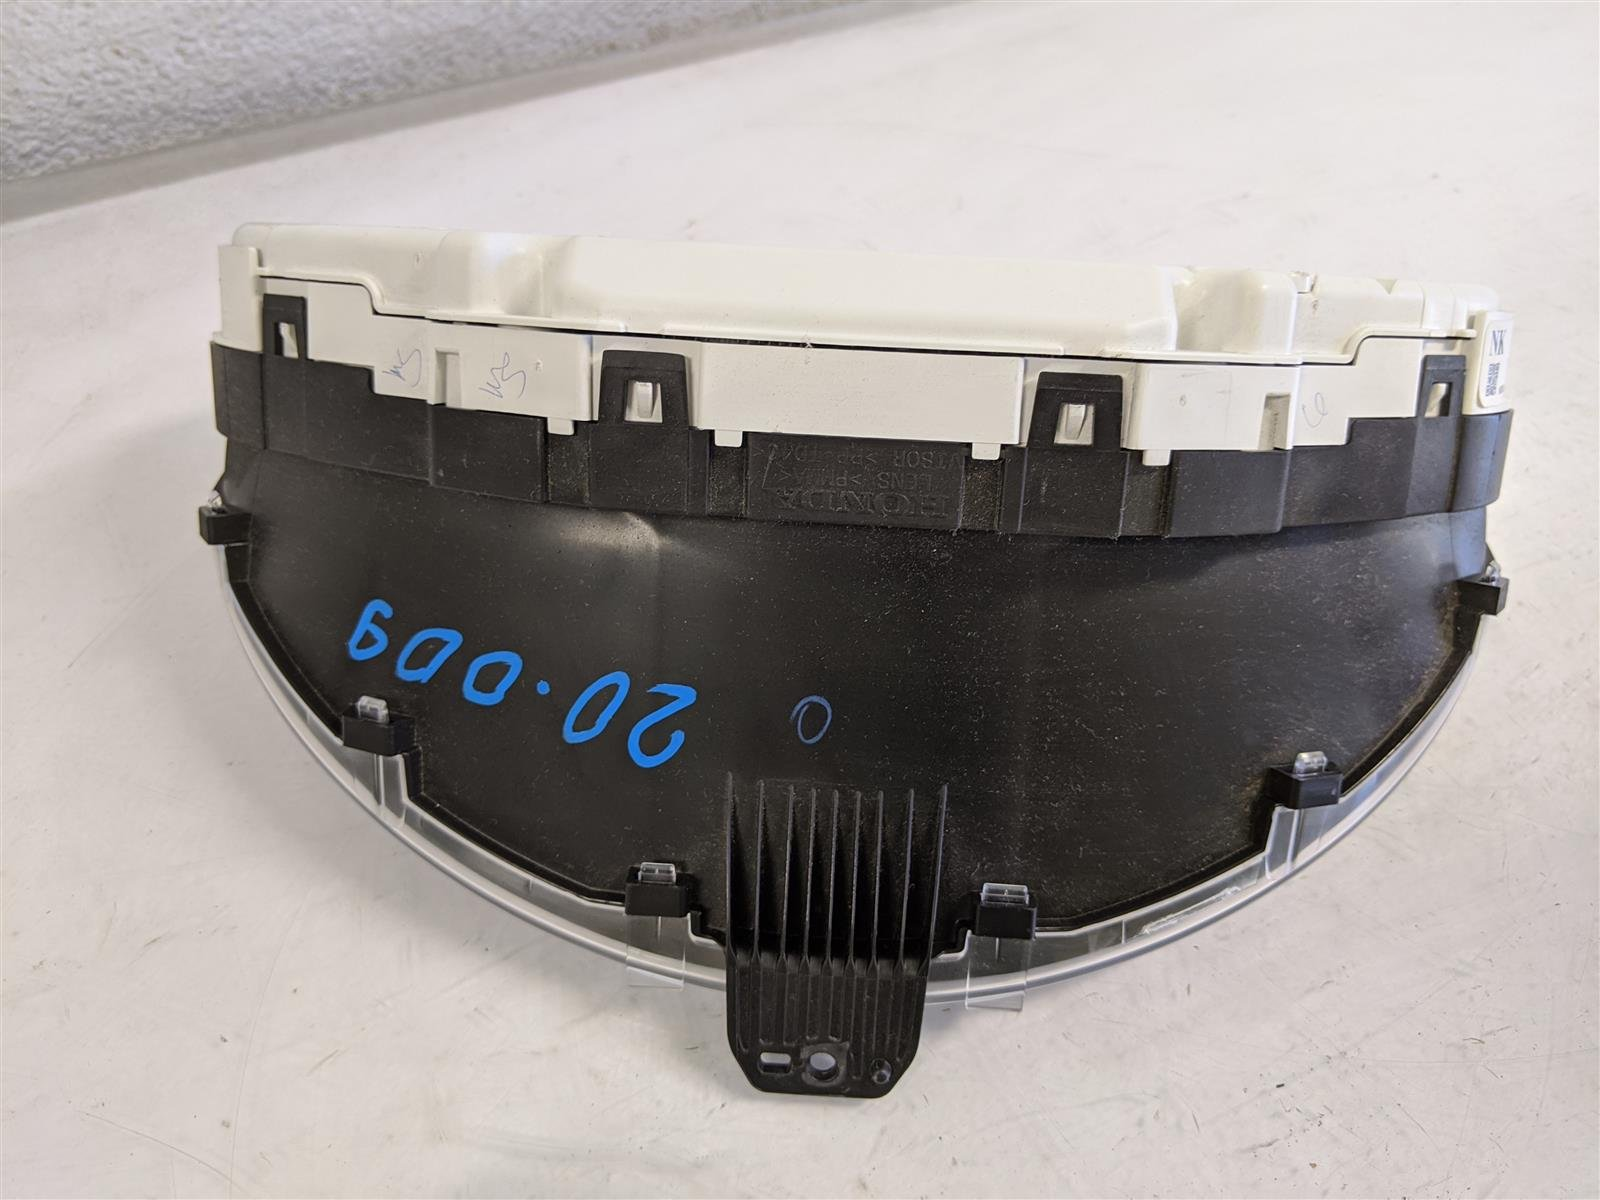 2017 Acura TLX 2.4l Base Speedometer Cluster Replacement